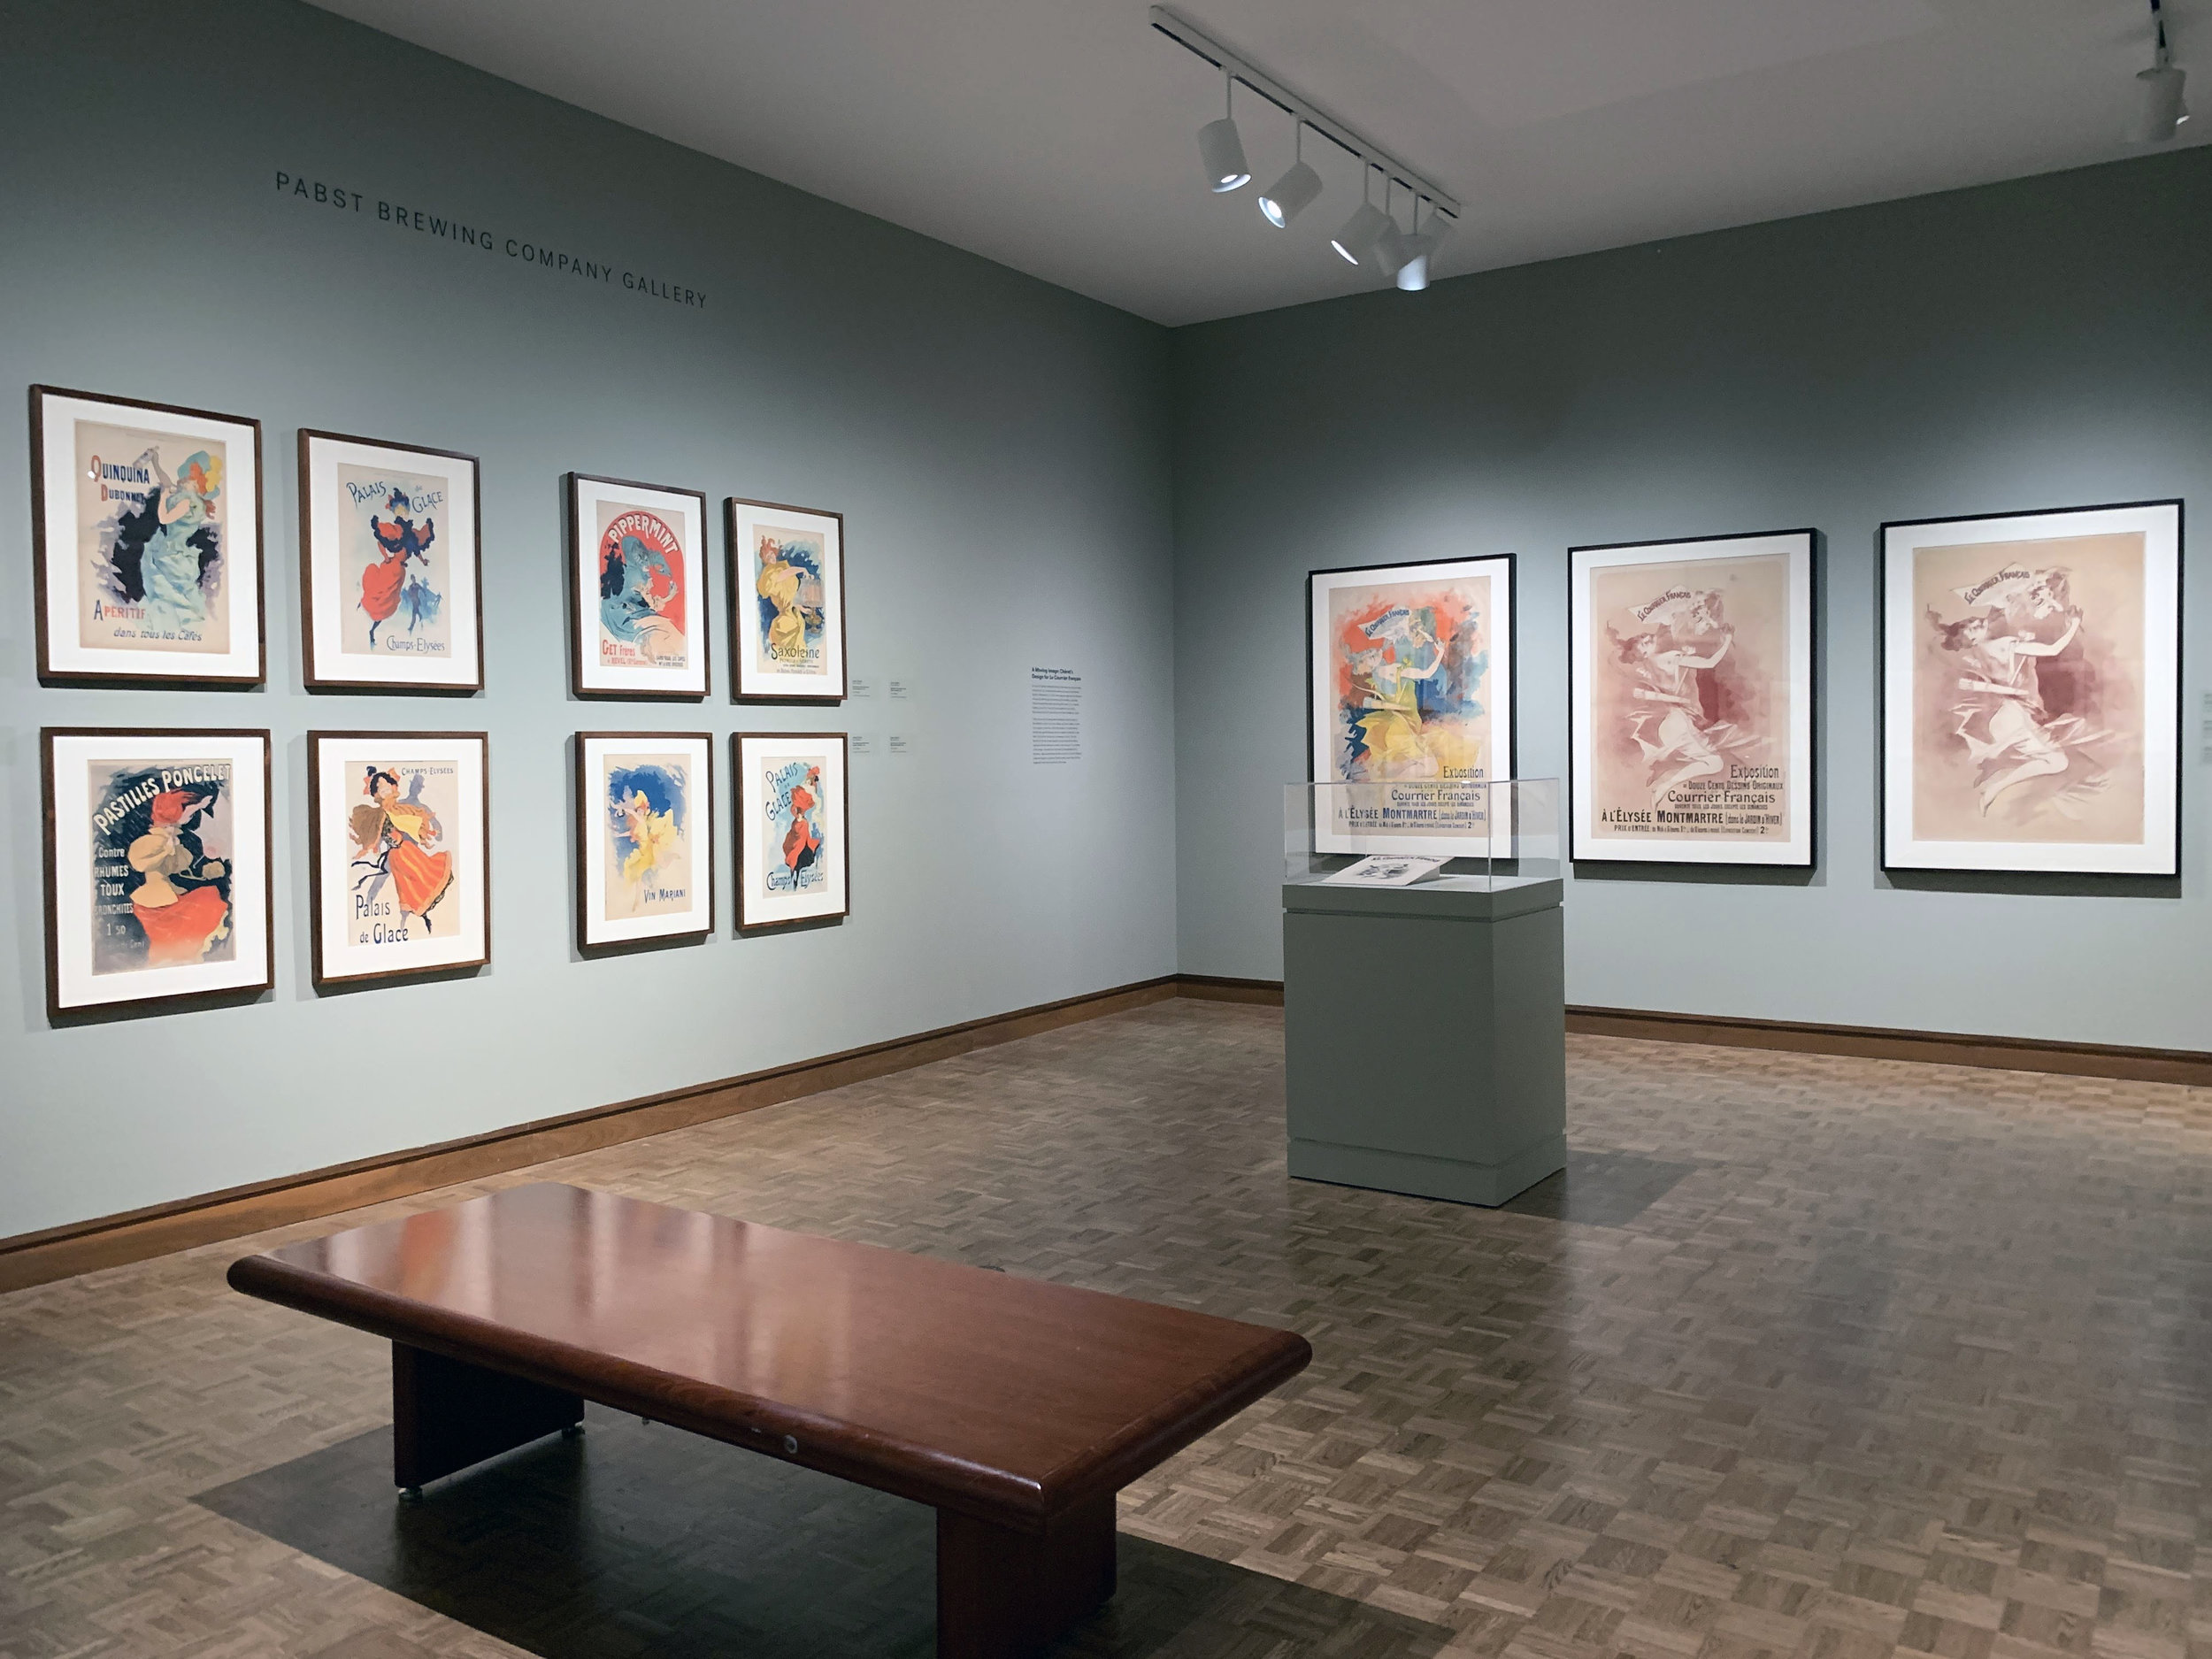 Chéret posters at the Milwaukee Art Museum